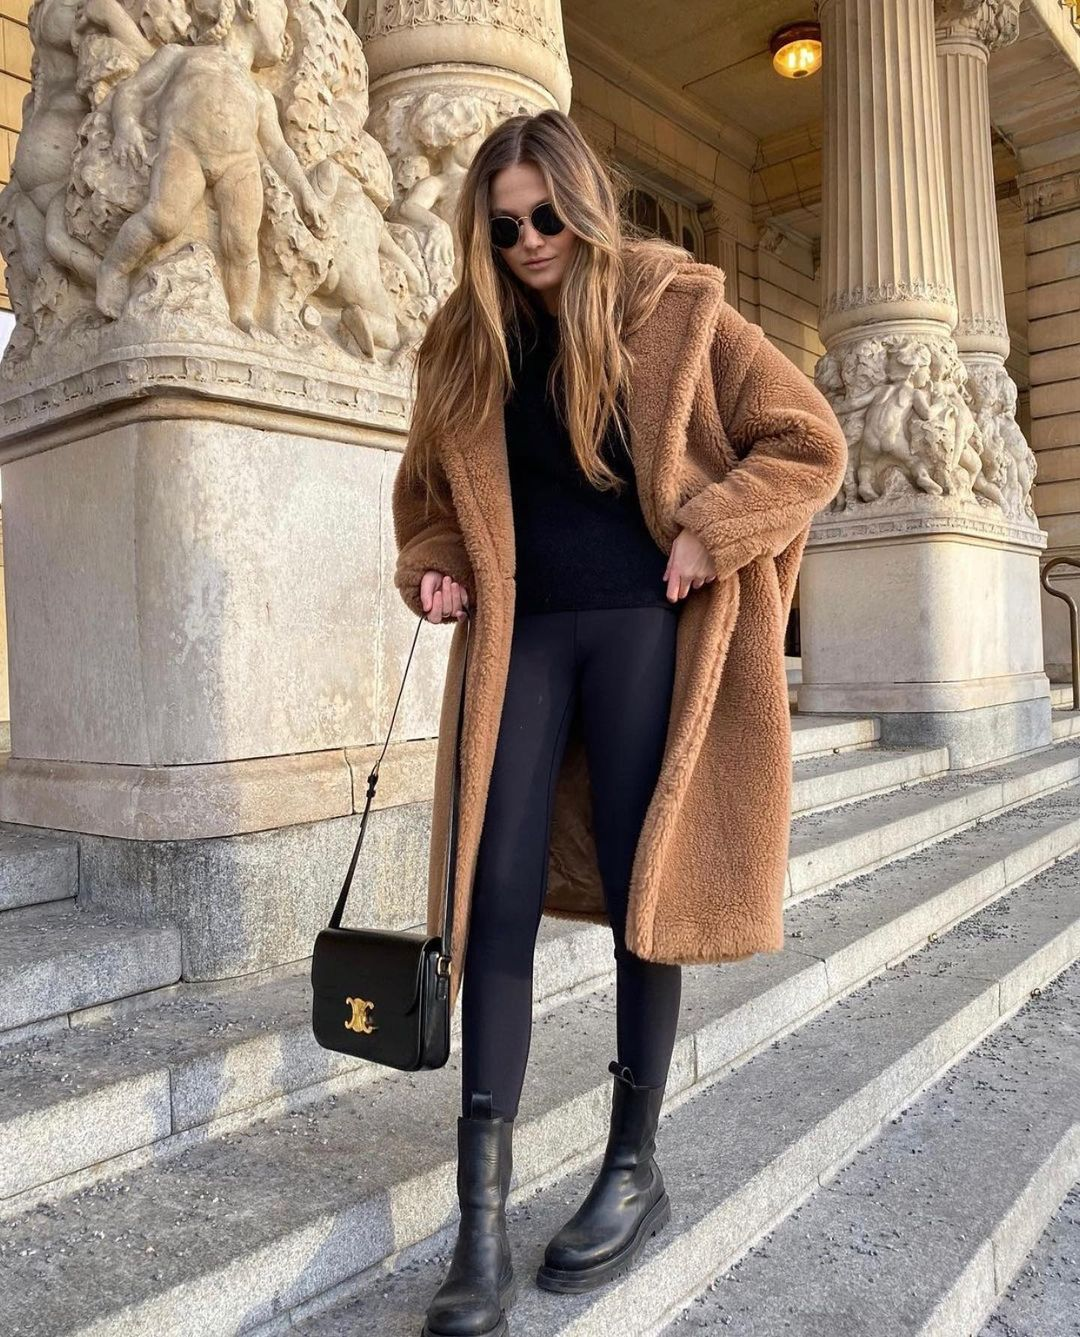 This Cozy Fall Outfit Is All I Want to Wear — @filippahagg in a camel teddy coat, black sweater, black leggings, and chunky lug-sole boots